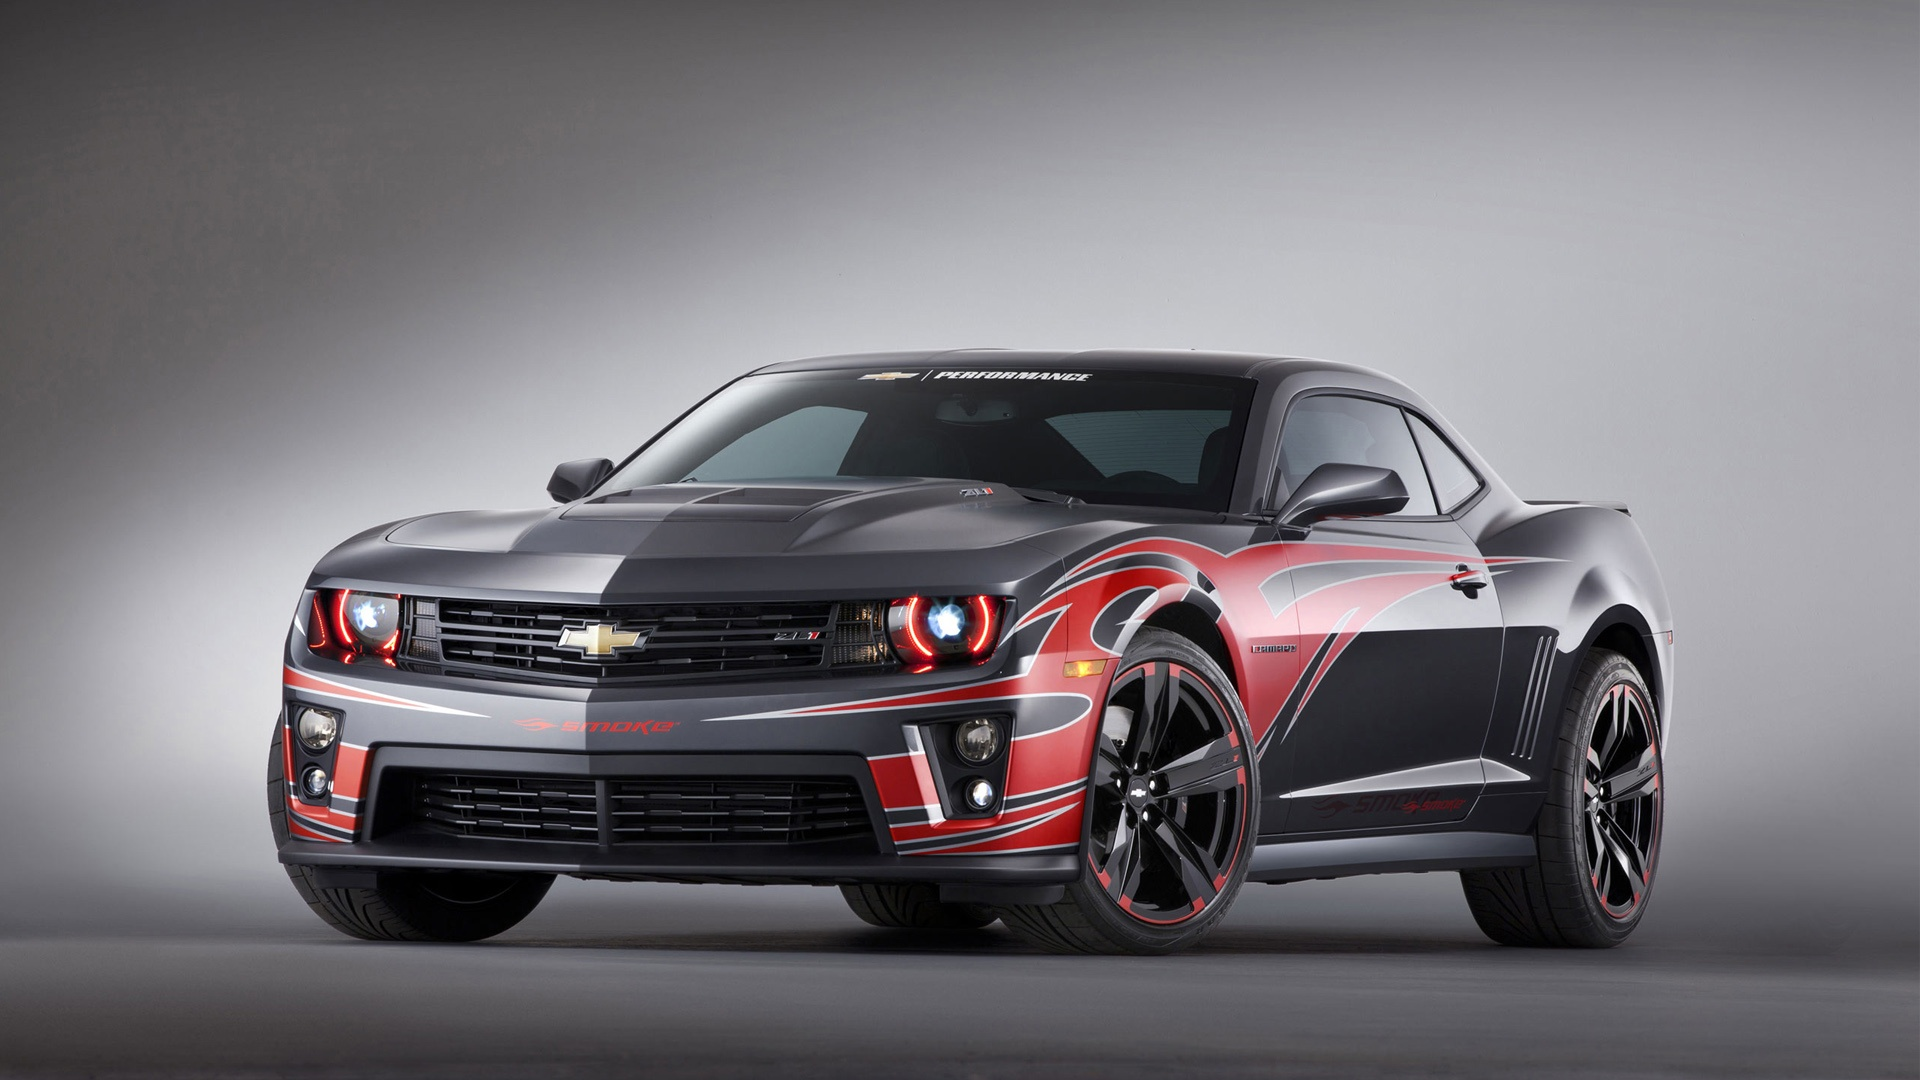 Description Chevrolet Camaro ZL1 Wallpaper is a hi res Wallpaper for 1920x1080